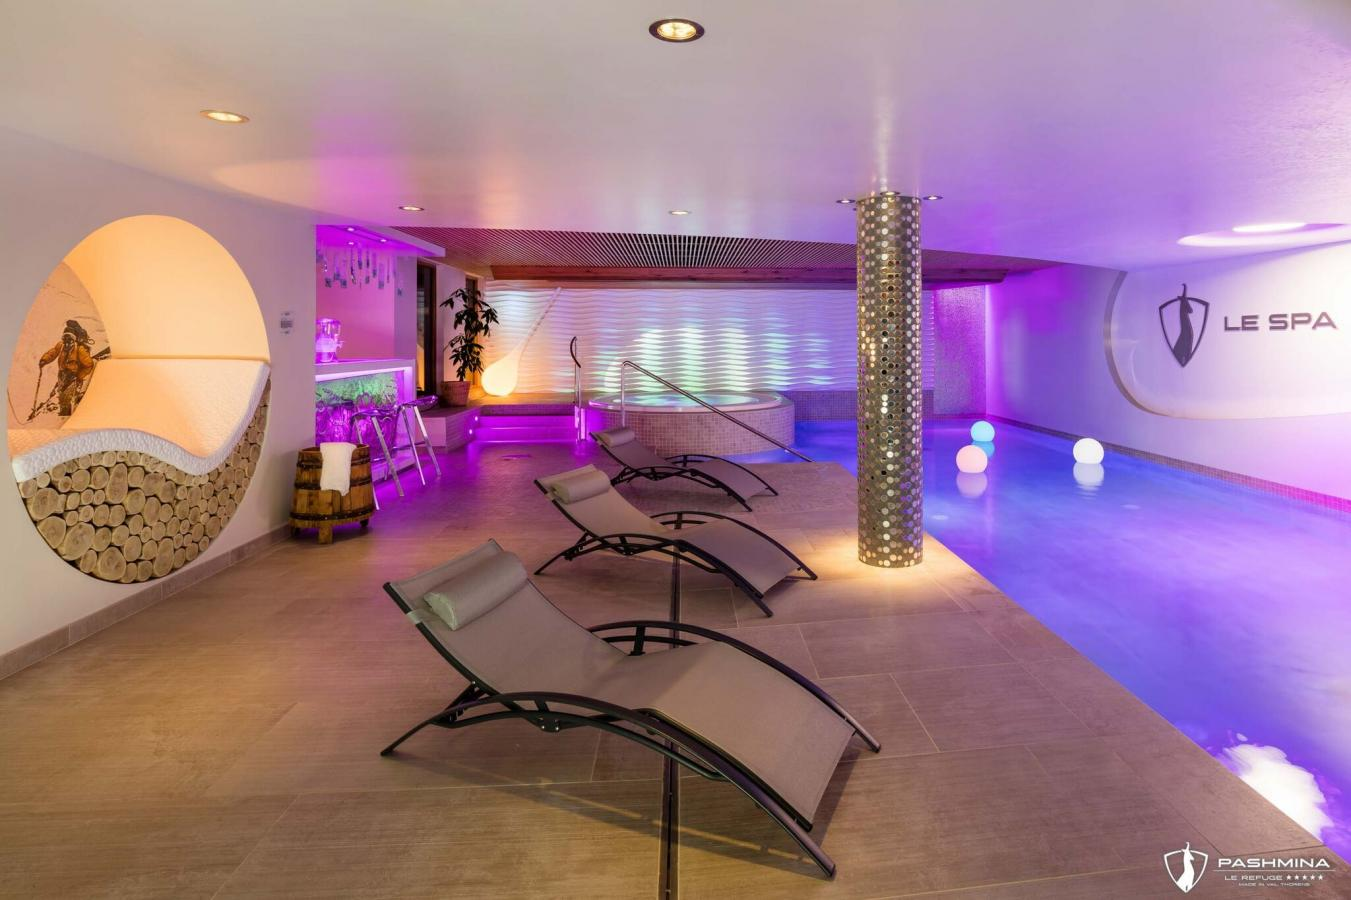 Spa of Pashmina Hotel - Val Thorens, France